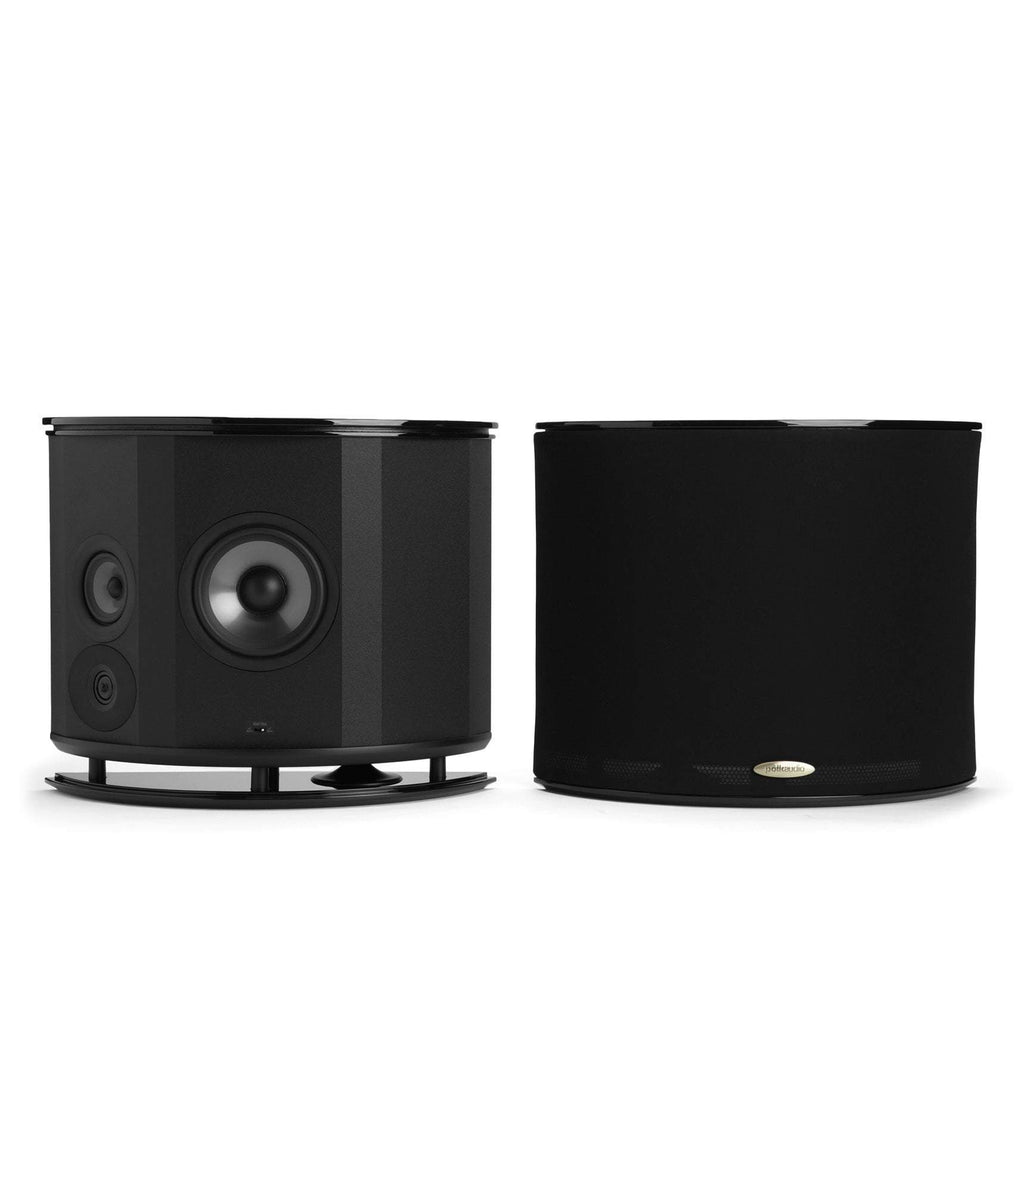 Polk Speaker Polk LSiM702F/X Surround Speaker - Pair